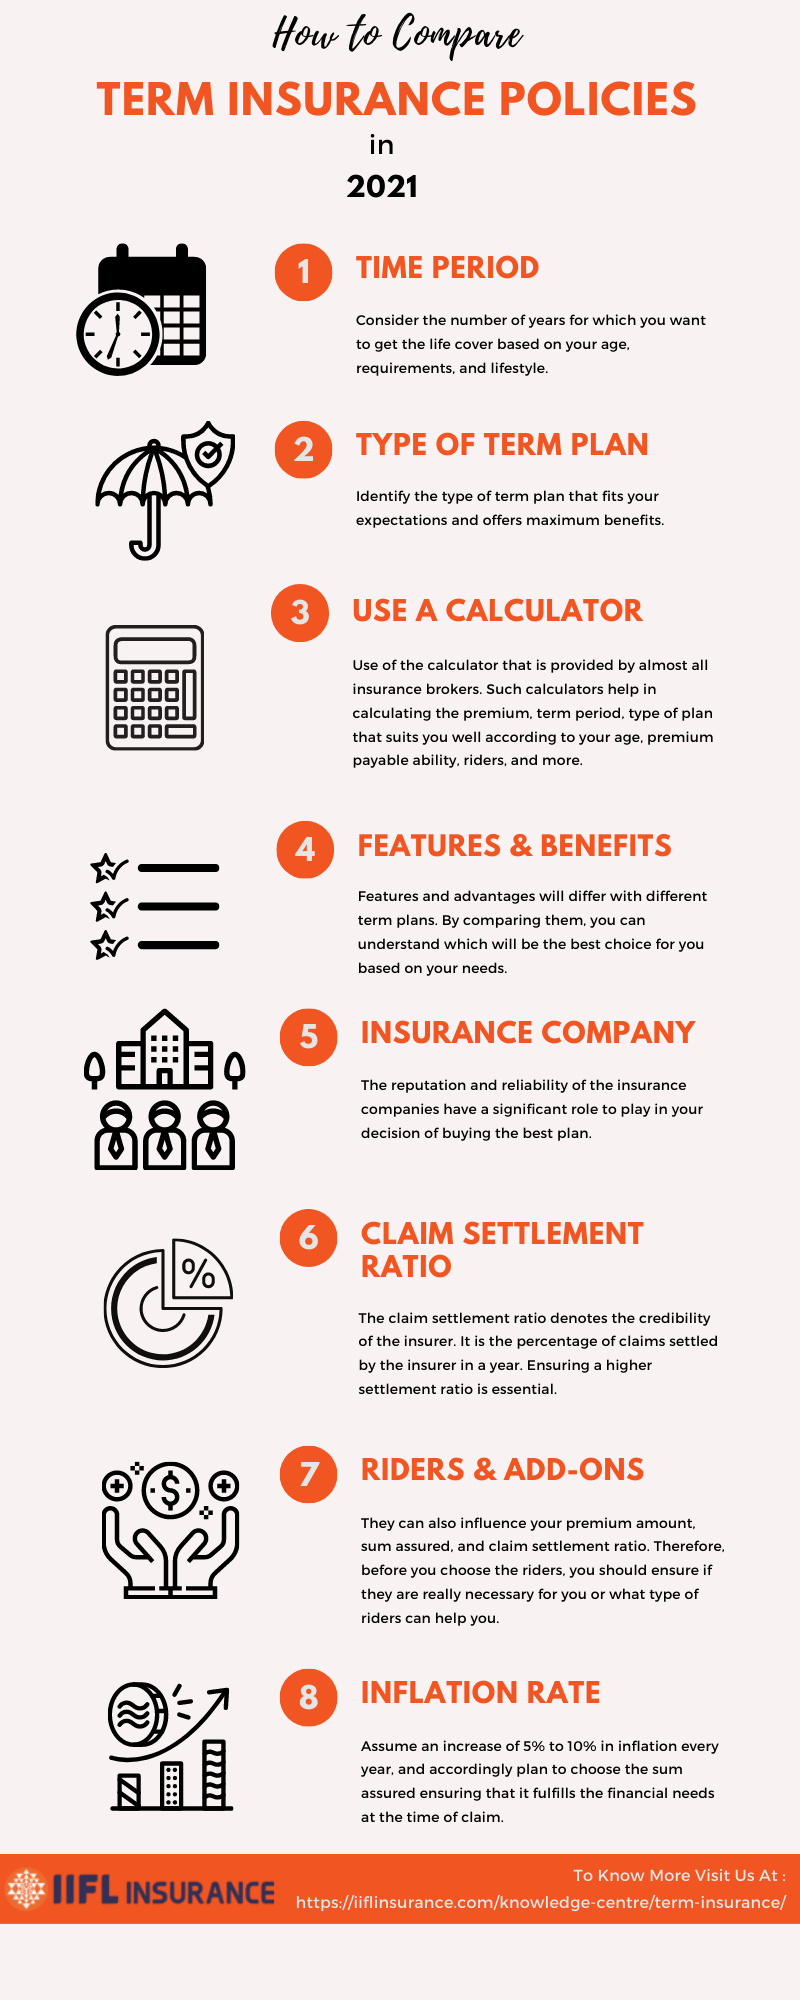 Factors to Consider when Comparing Term Insurance Policies in 2021